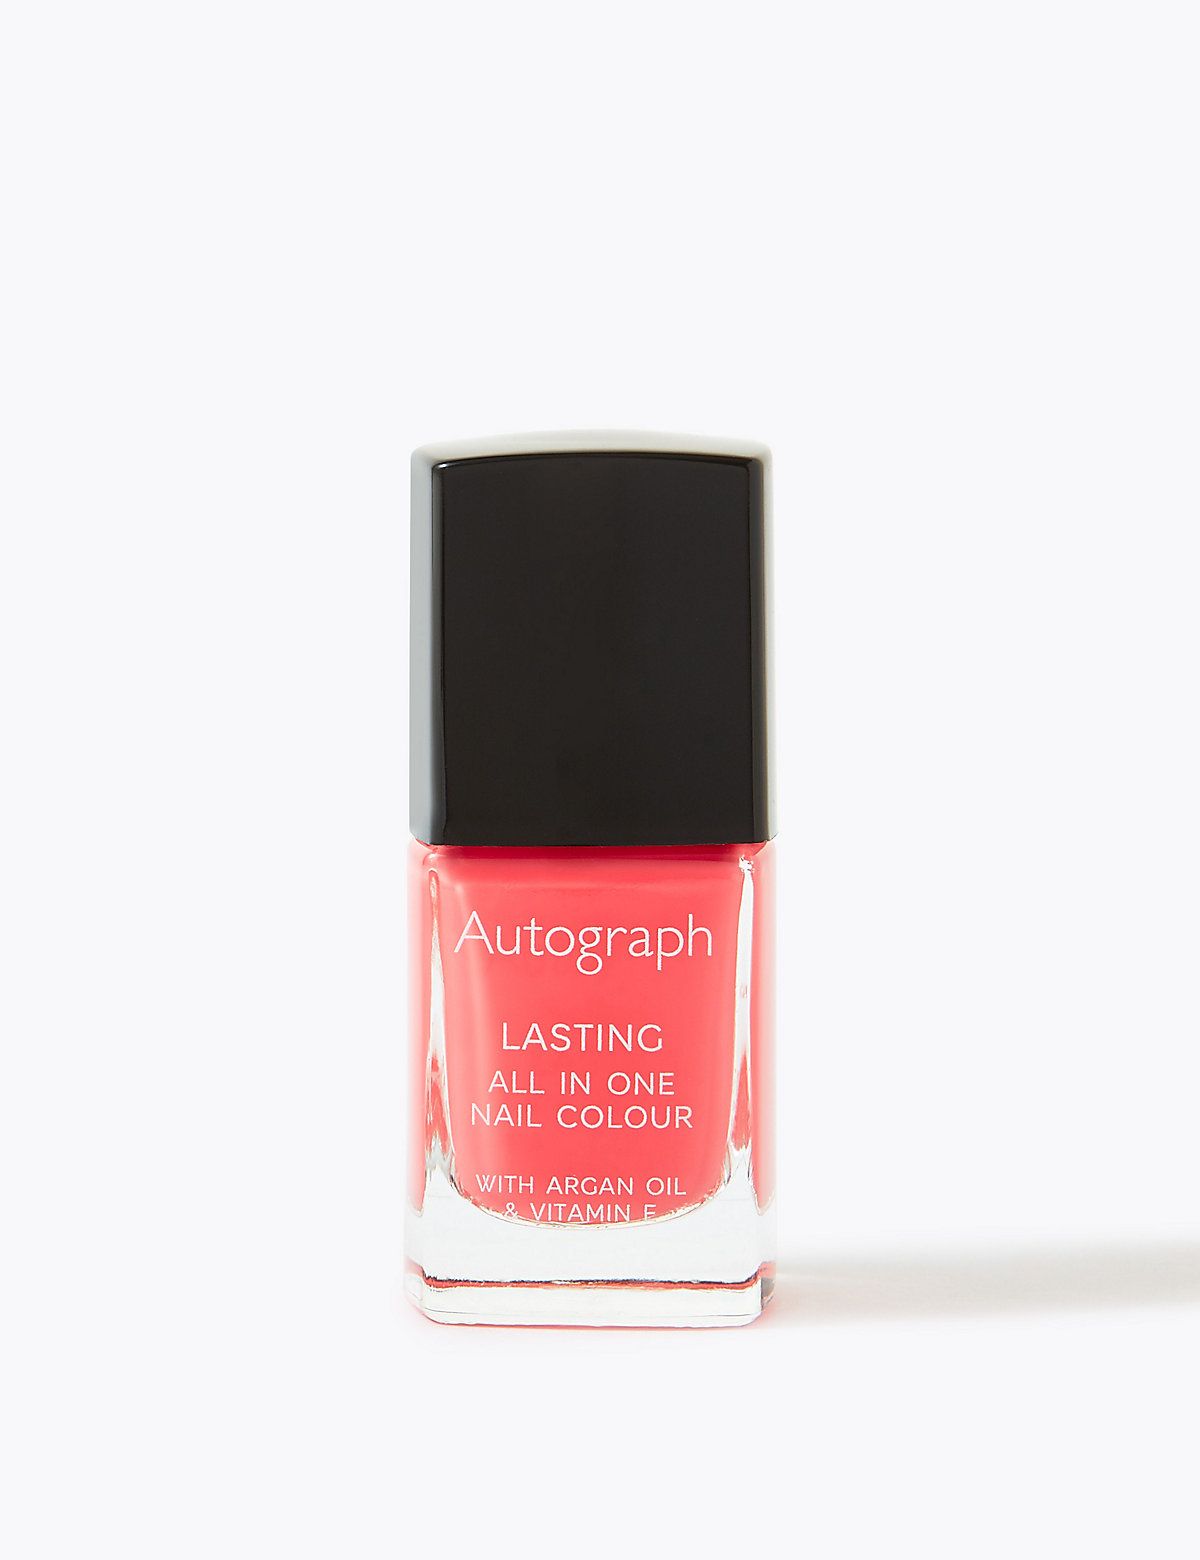 Image of Autograph All in One Nail Colour with Argan Oil 11ml